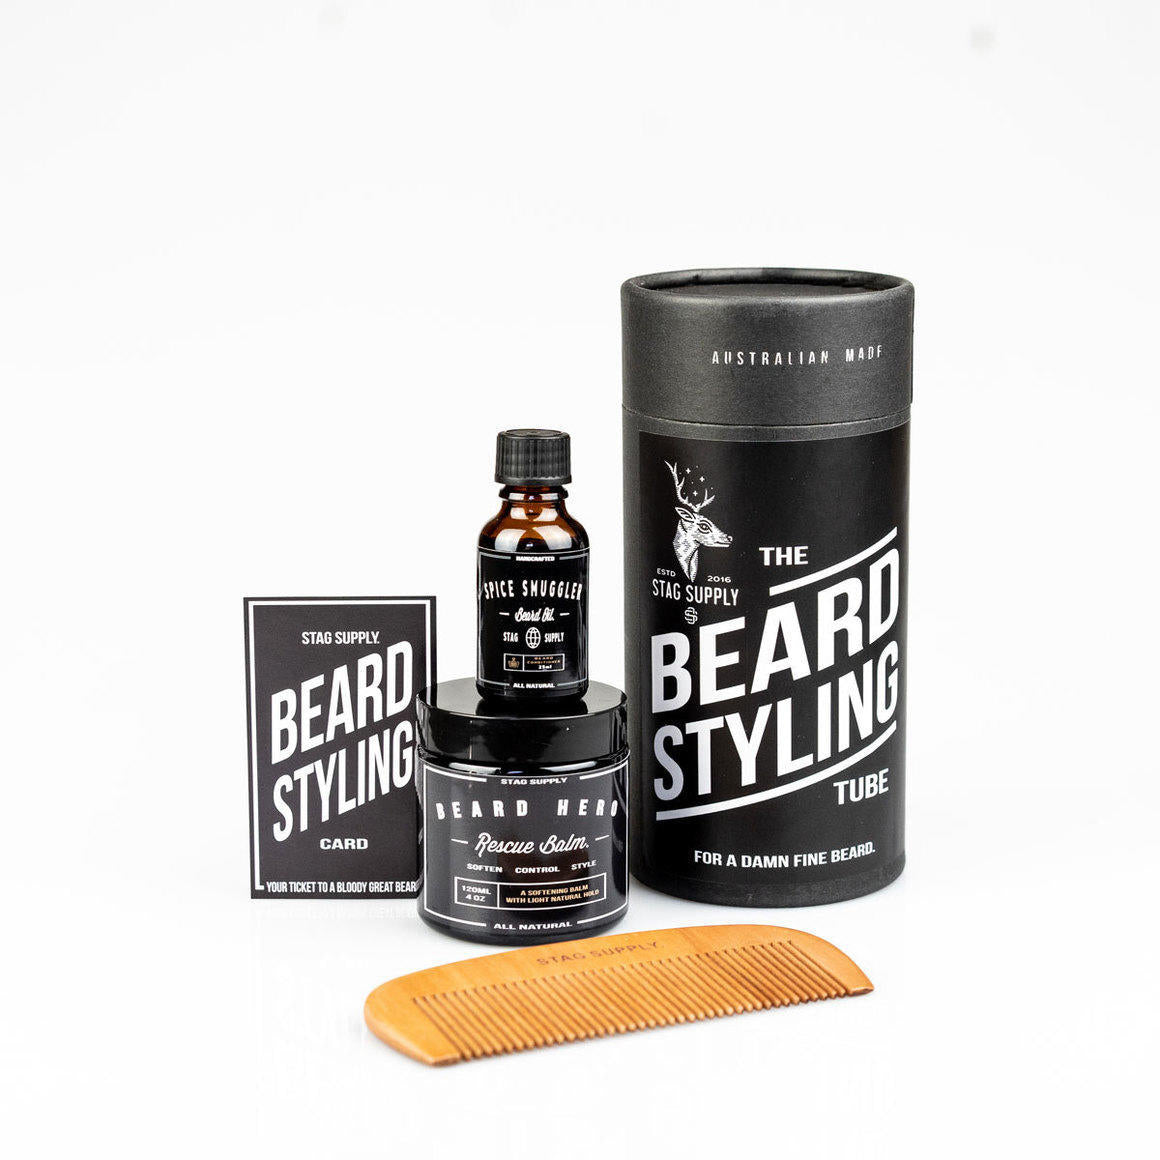 Stag Supply - Beard Styling Gift Pack